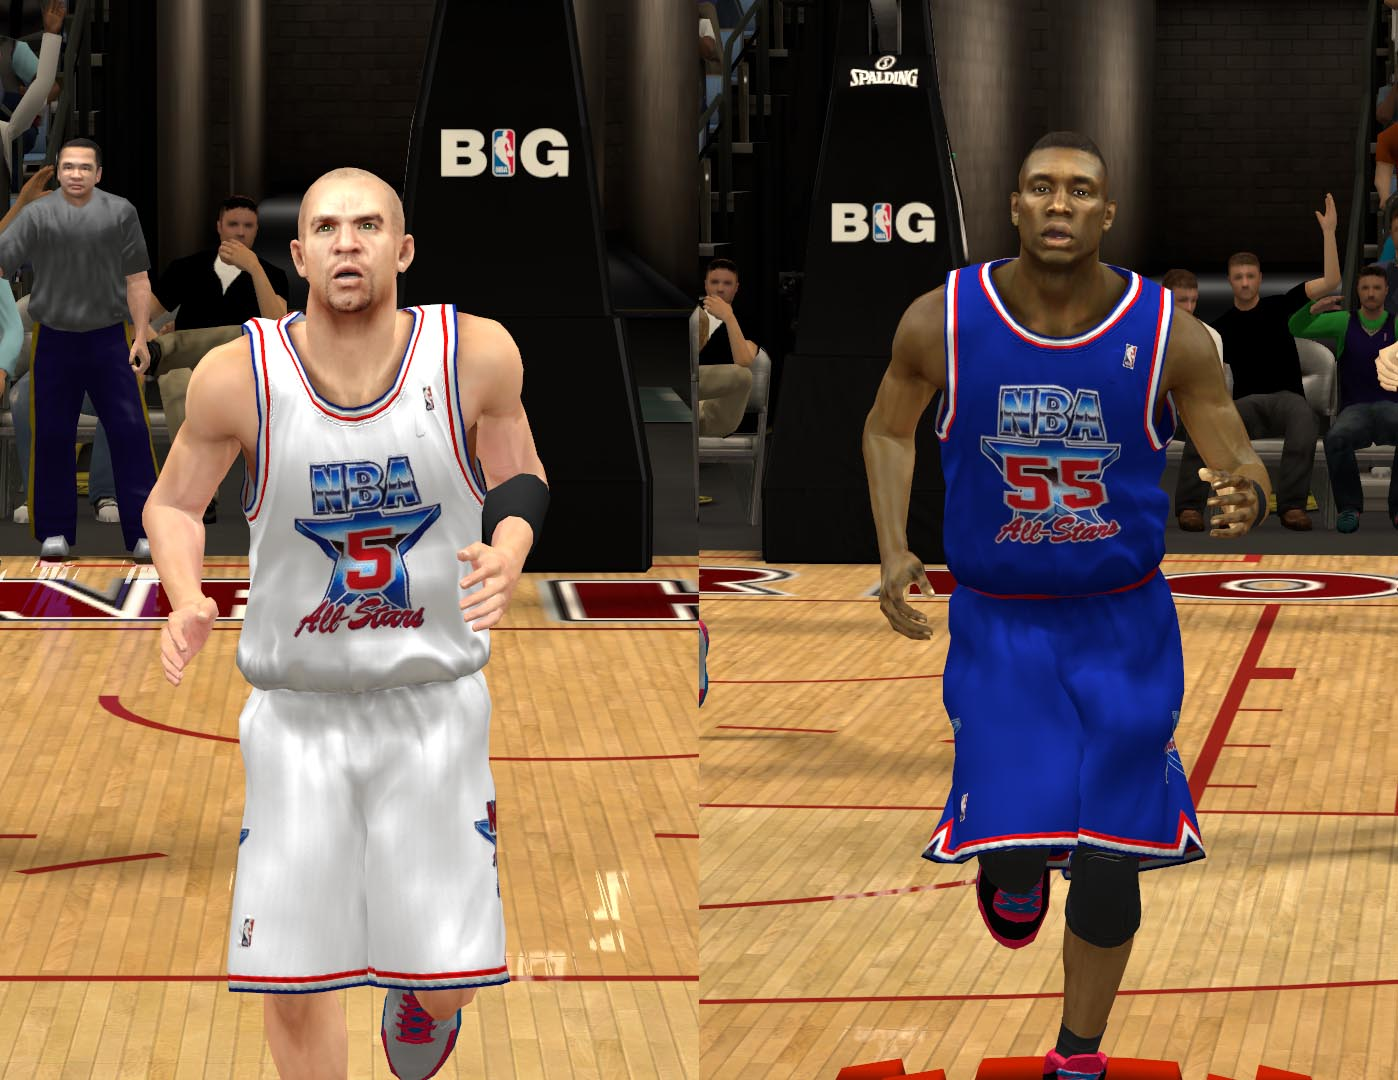 1992 All-Star Jerseys 2K13